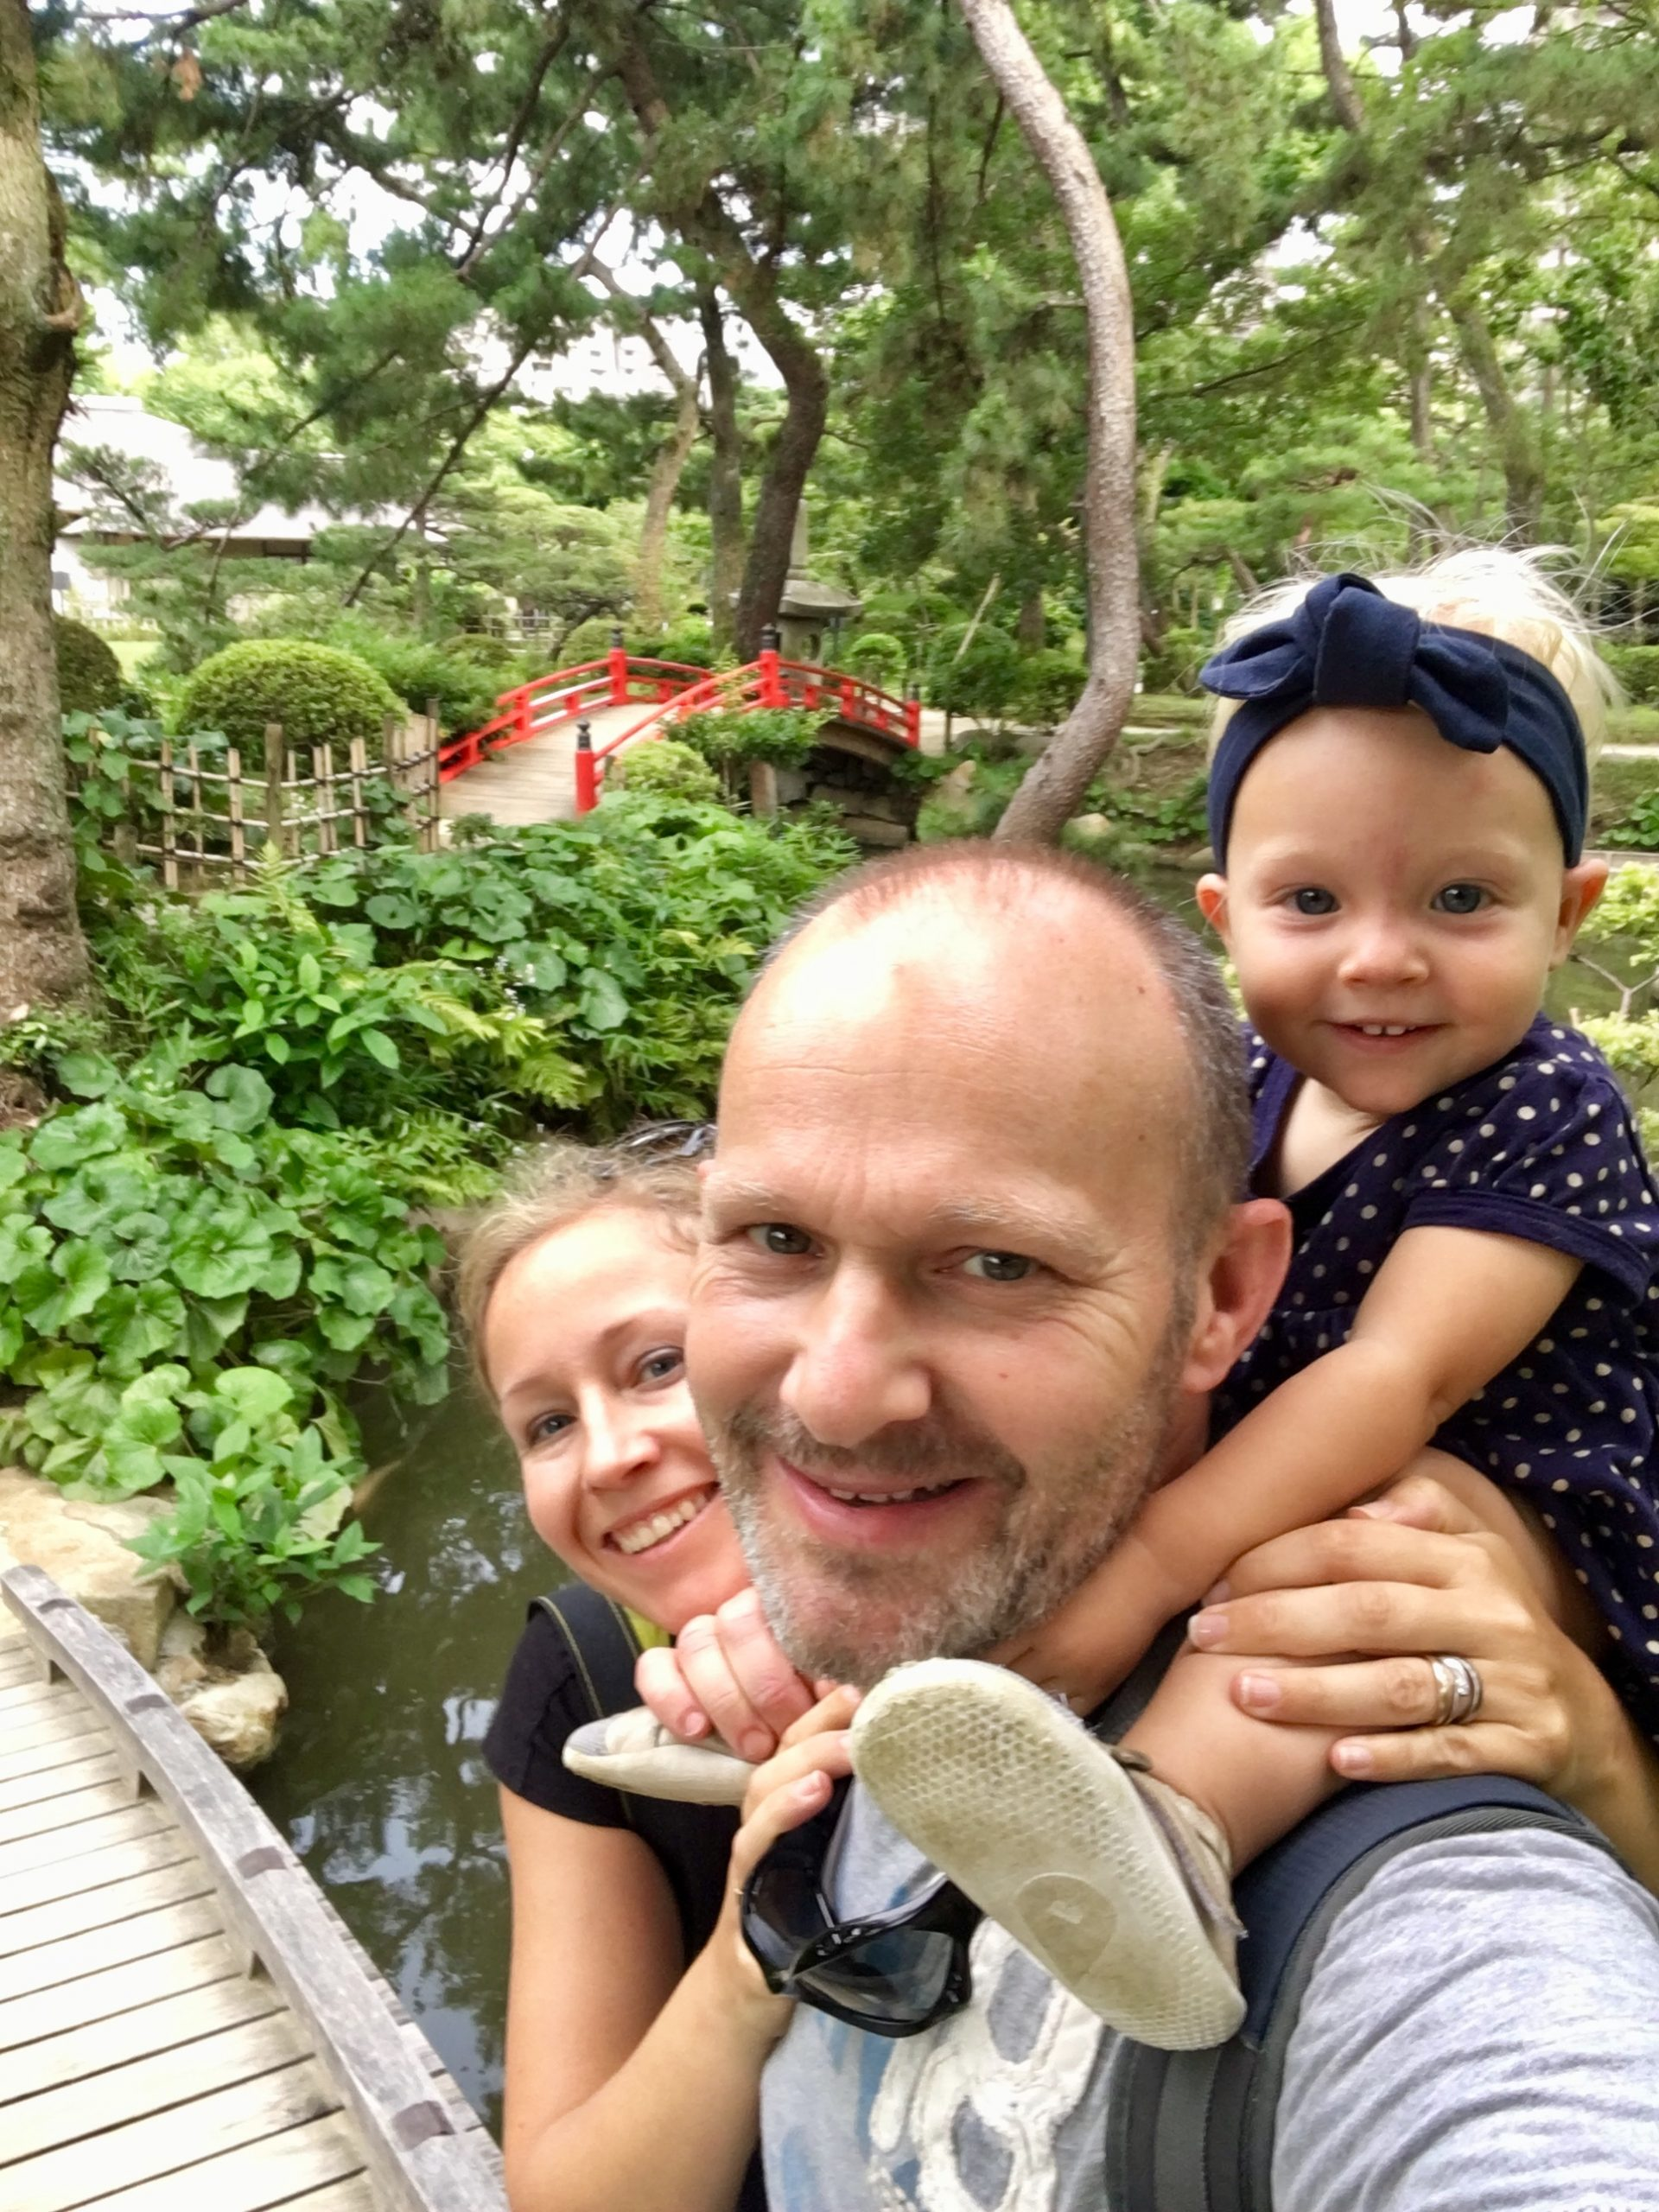 Family traveling in Japan